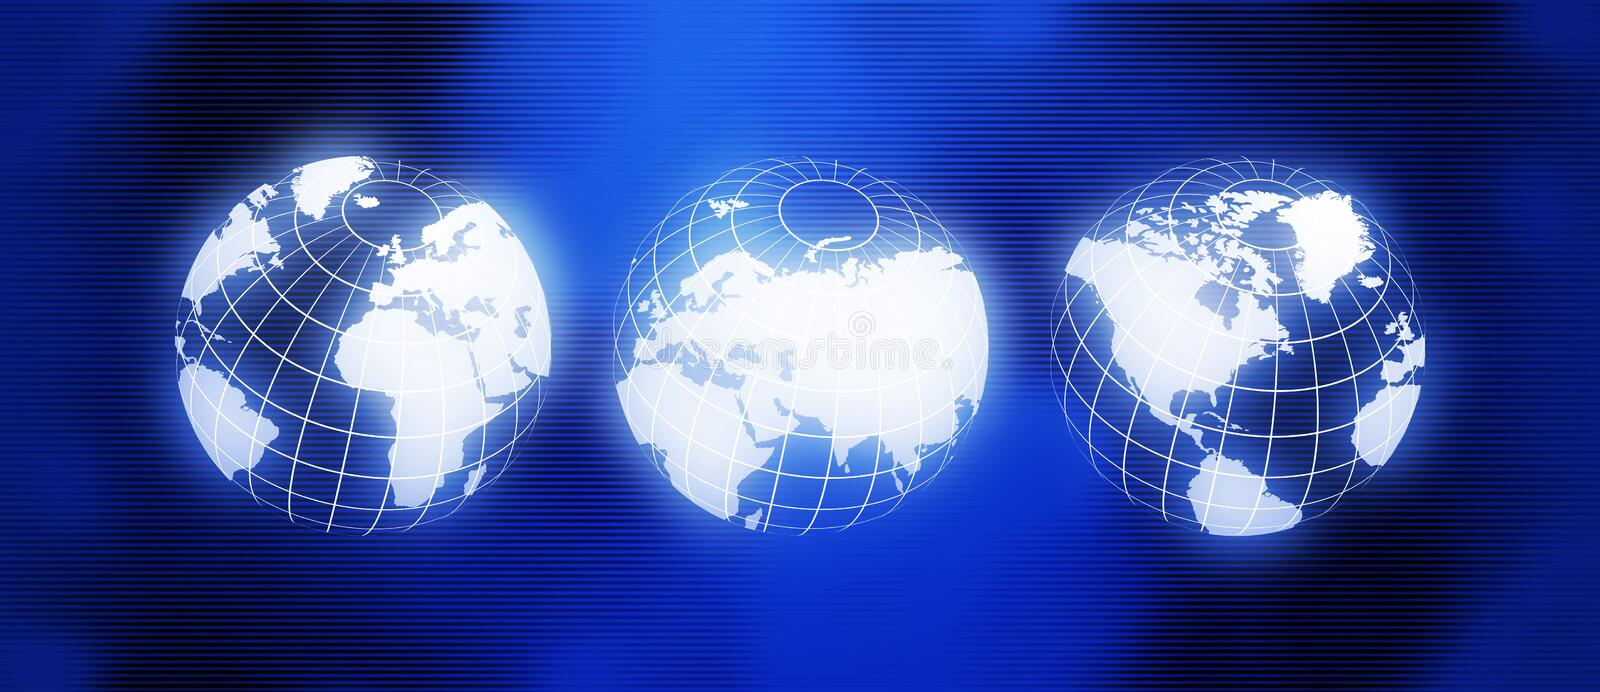 Glowing World map. Technology background vector illustration